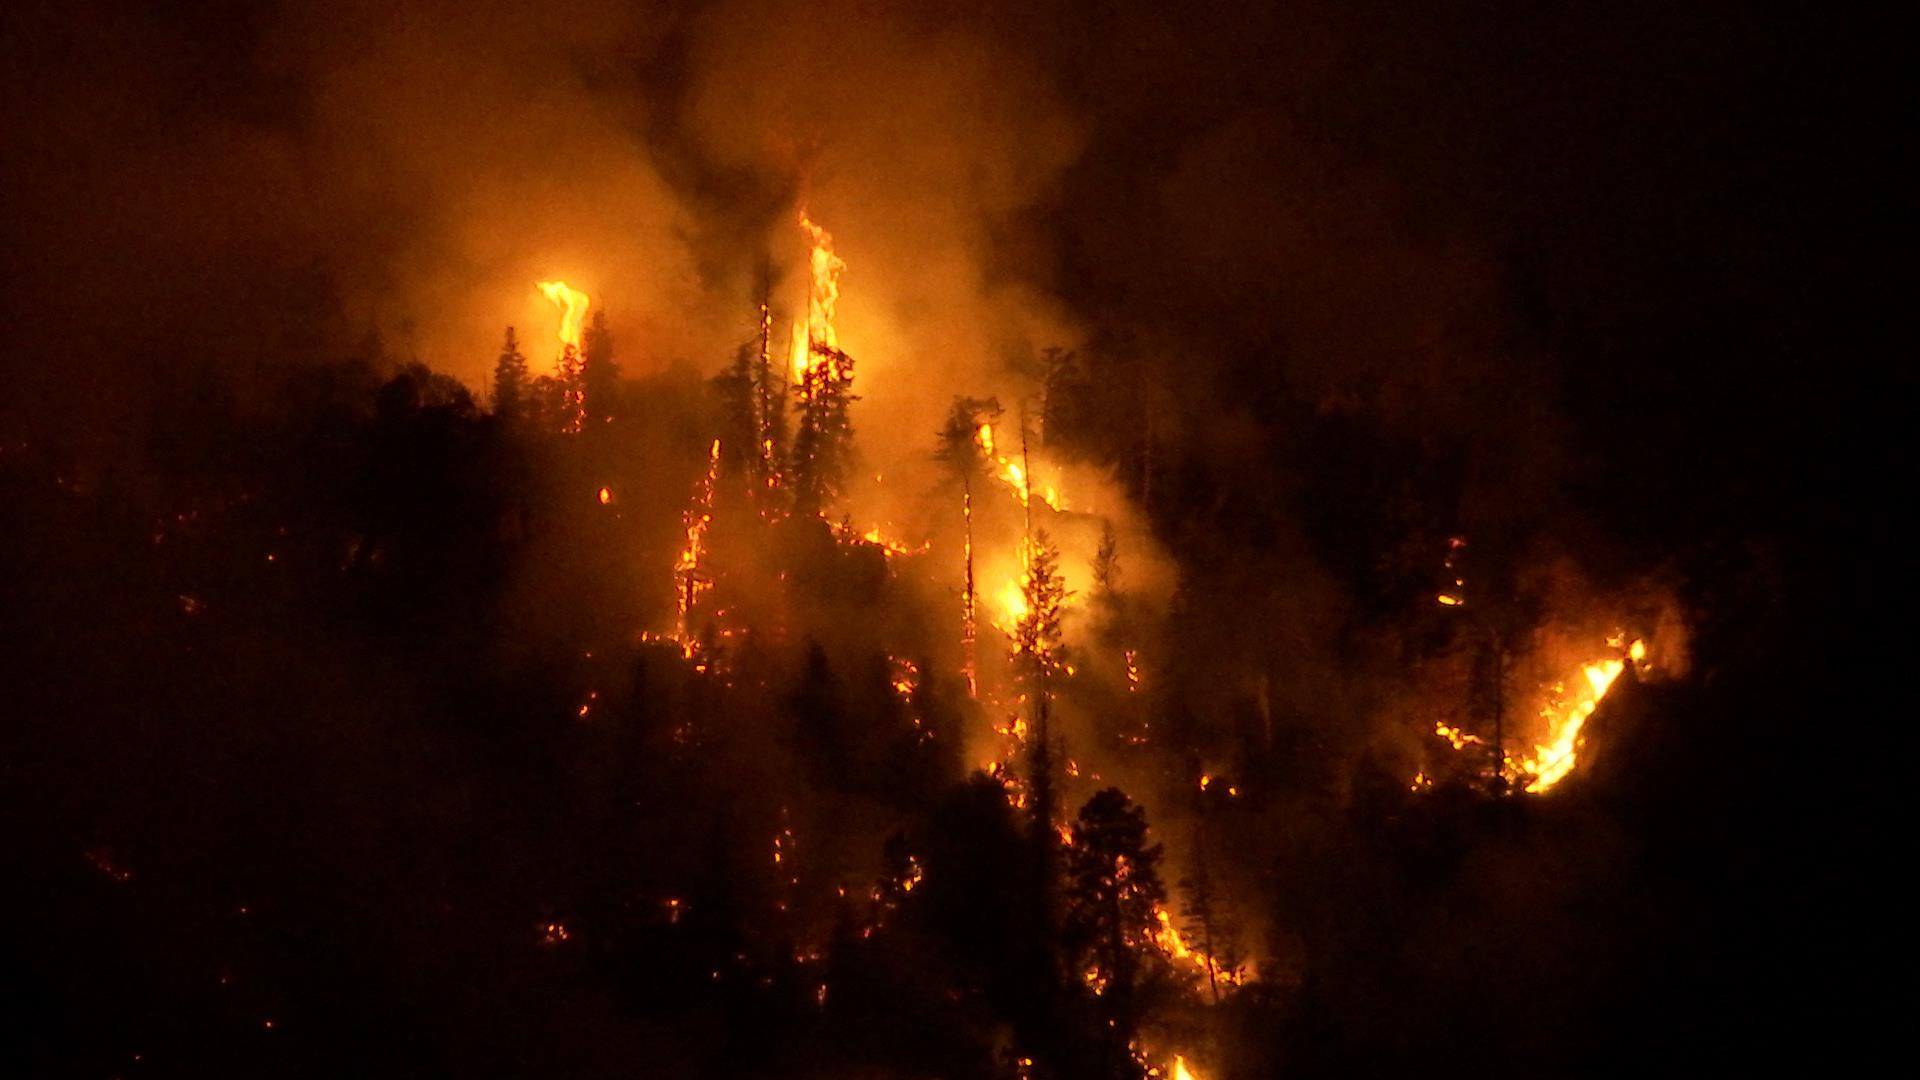 Lightning-caused fire burning on Saddle Mountain in the Pine Valley Wilderness of the Dixie National Forest, Washington County, Utah, June 24, 2016 | Photo by Michael Durrant, St. George News